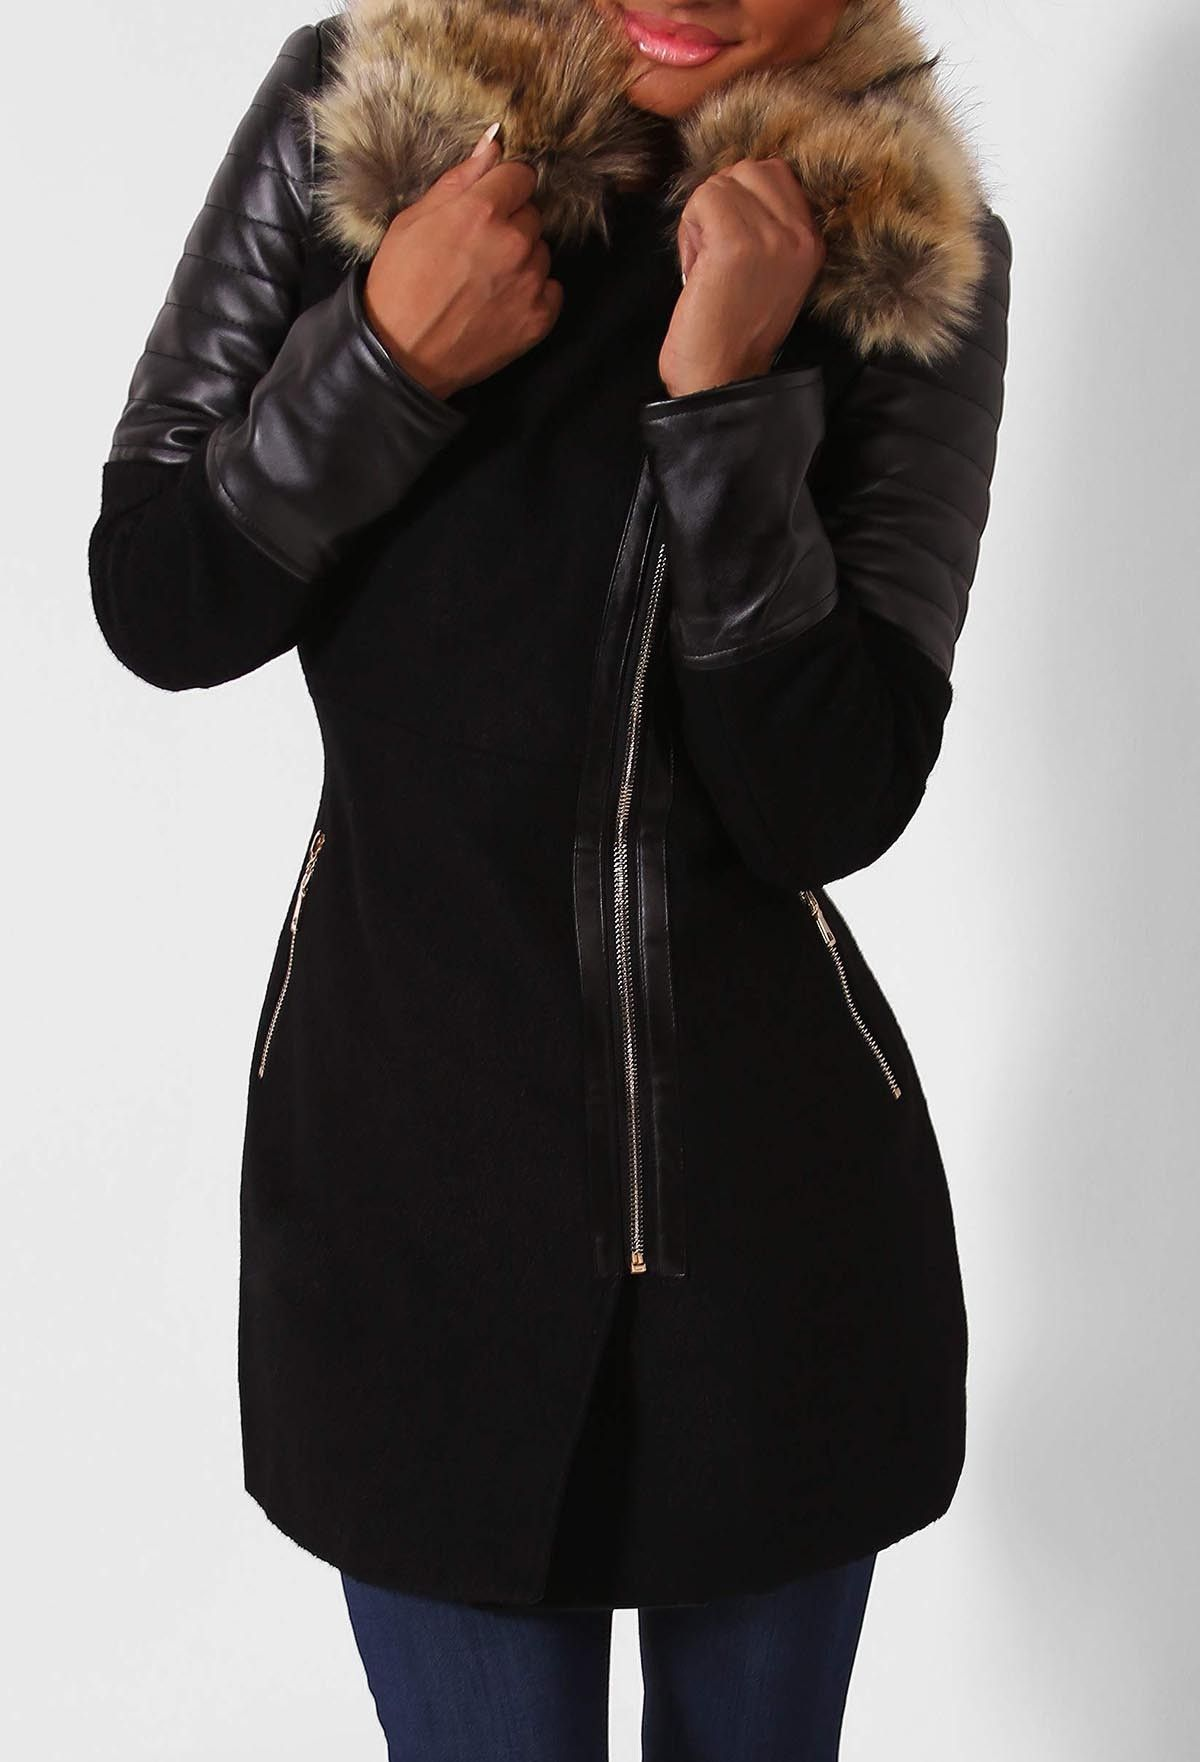 High Society Black Leatherette Sleeved Faux Fur Trim Coat ...